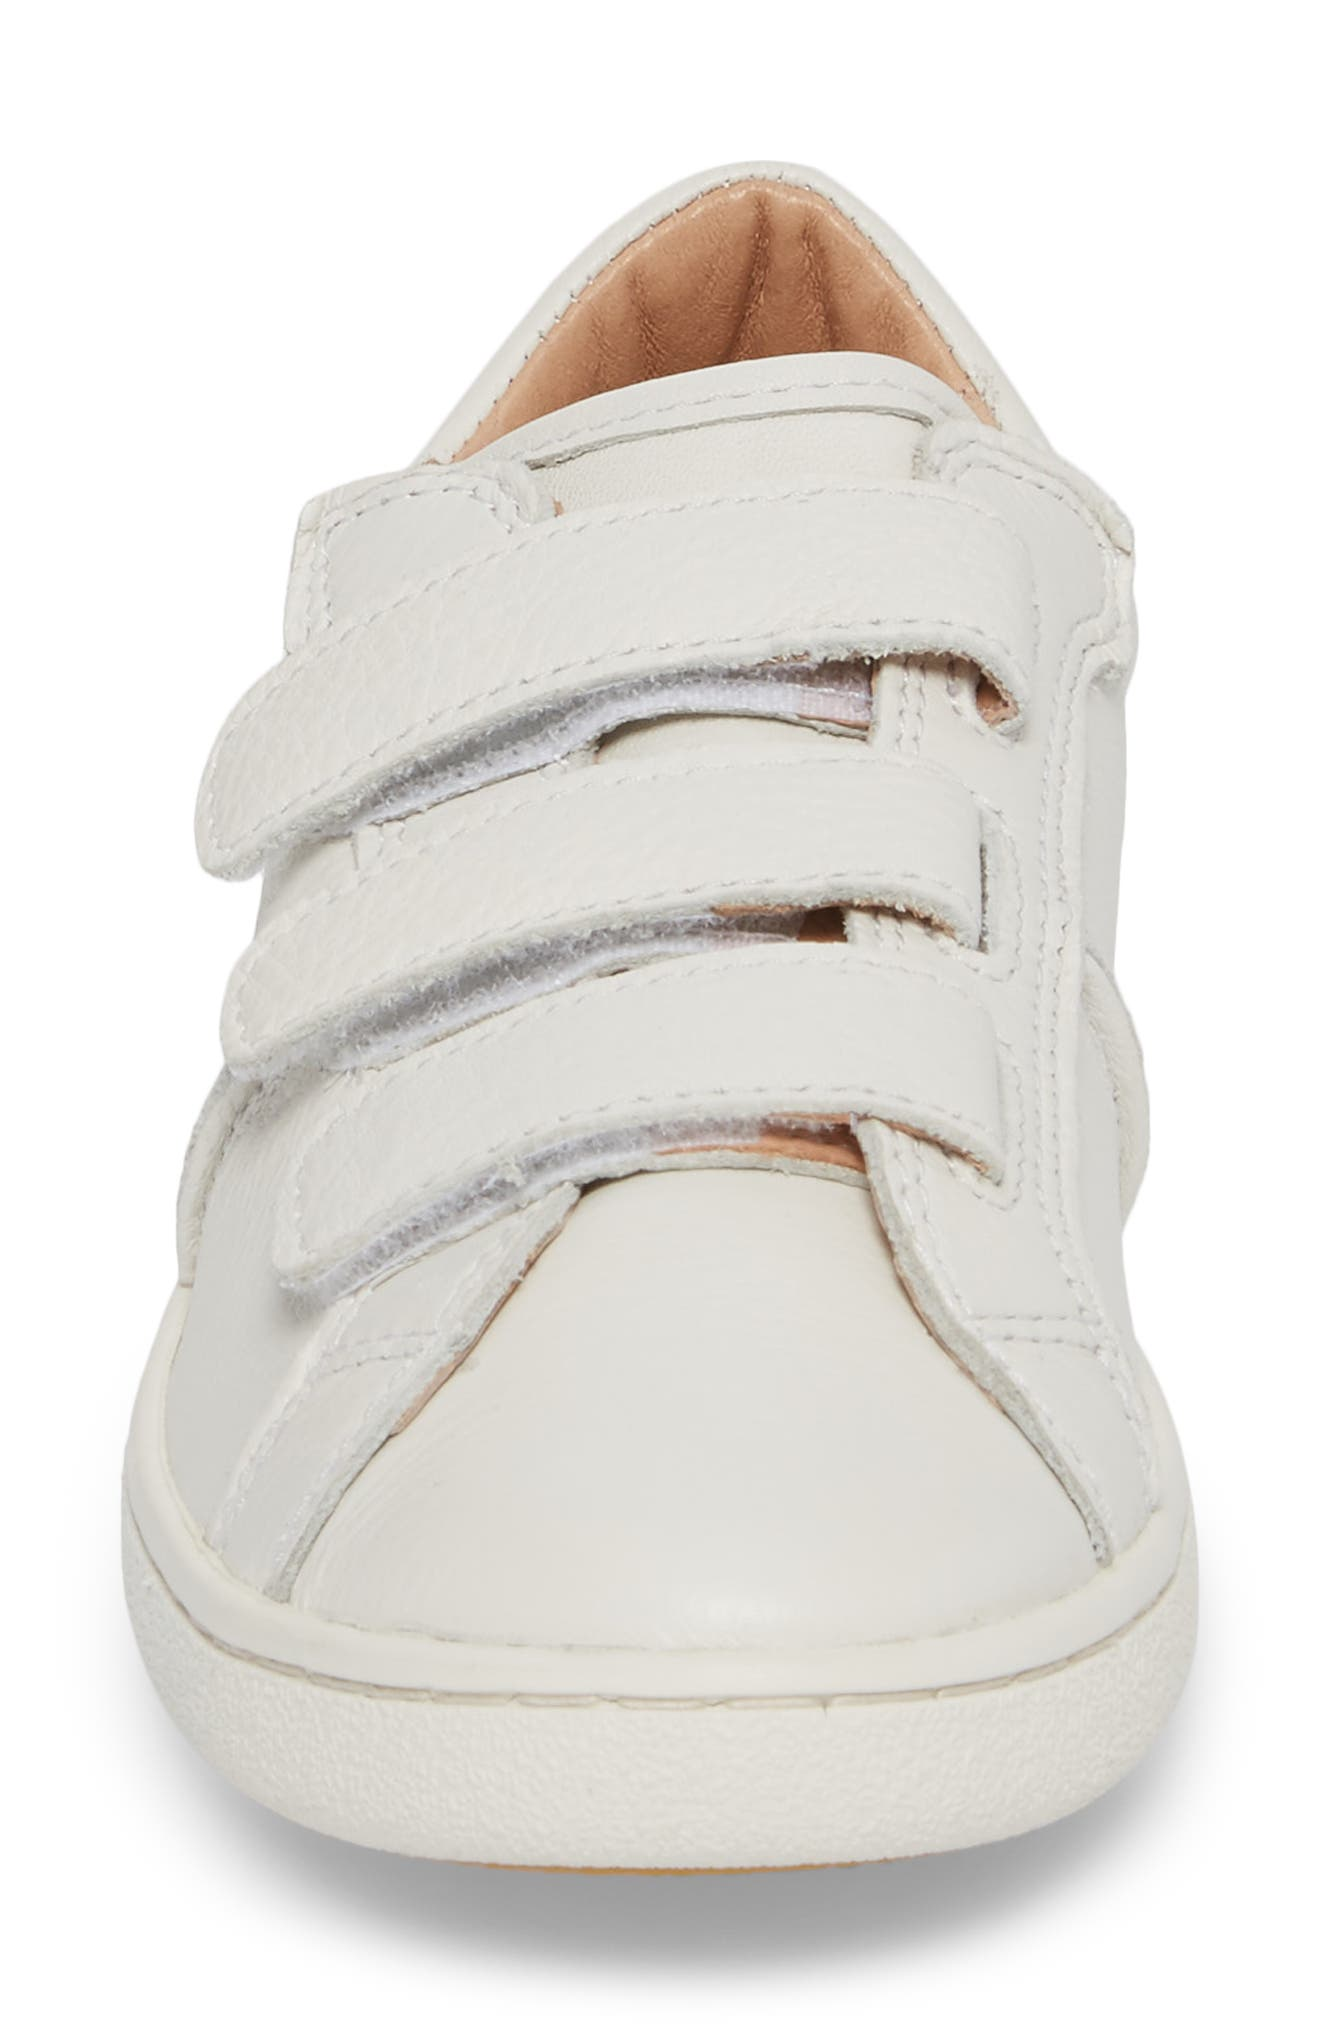 Alix Sneaker,                             Alternate thumbnail 4, color,                             White Leather